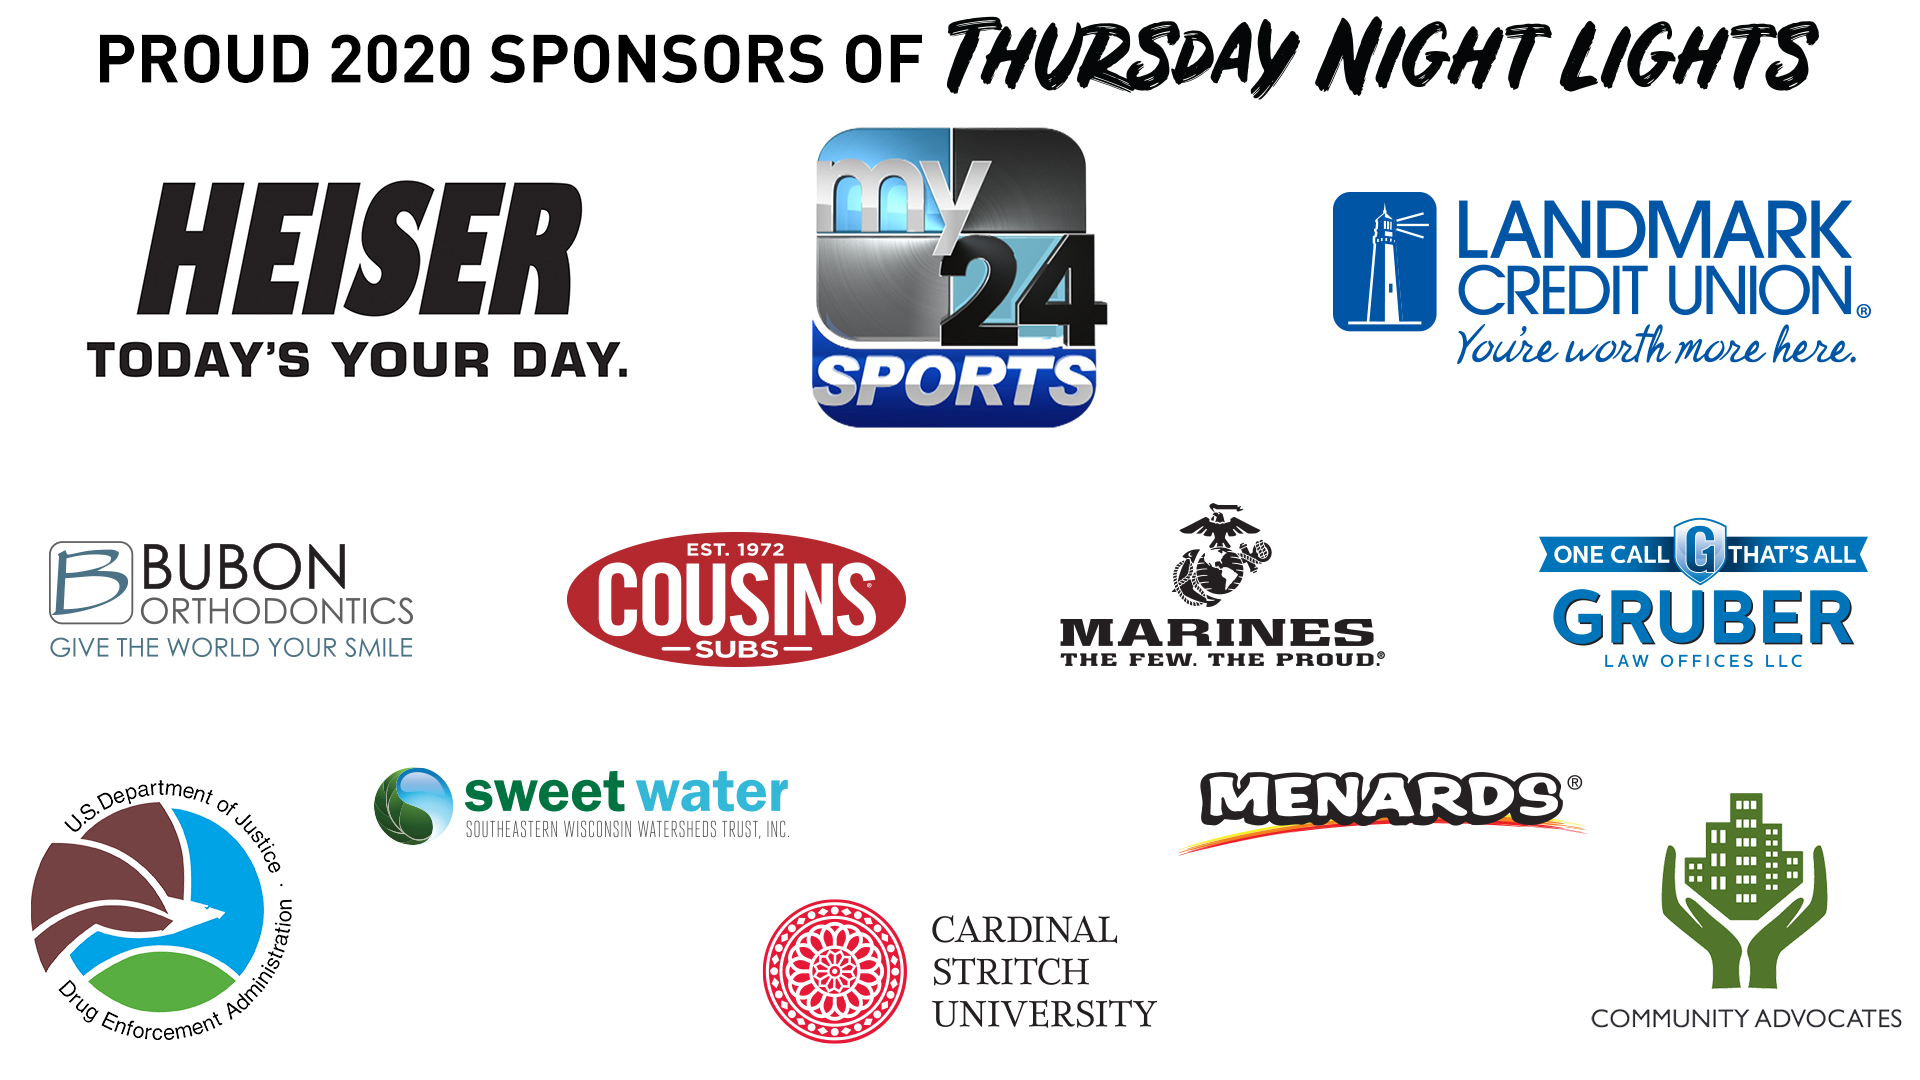 Heiser Automotive Group THURSDAY NIGHT LIGHTS presented by Landmark Credit Union | Proud 2020 Sponsors